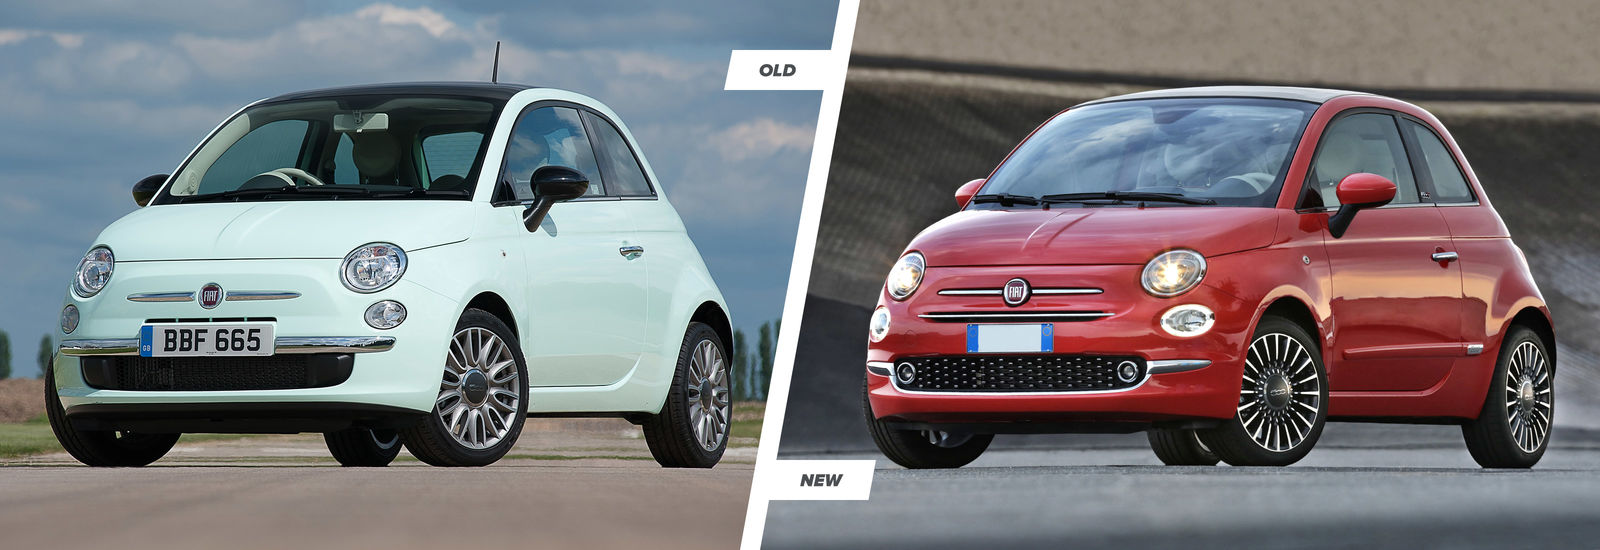 stile specifications price palio forum fiat list stuff bhp technical feature team